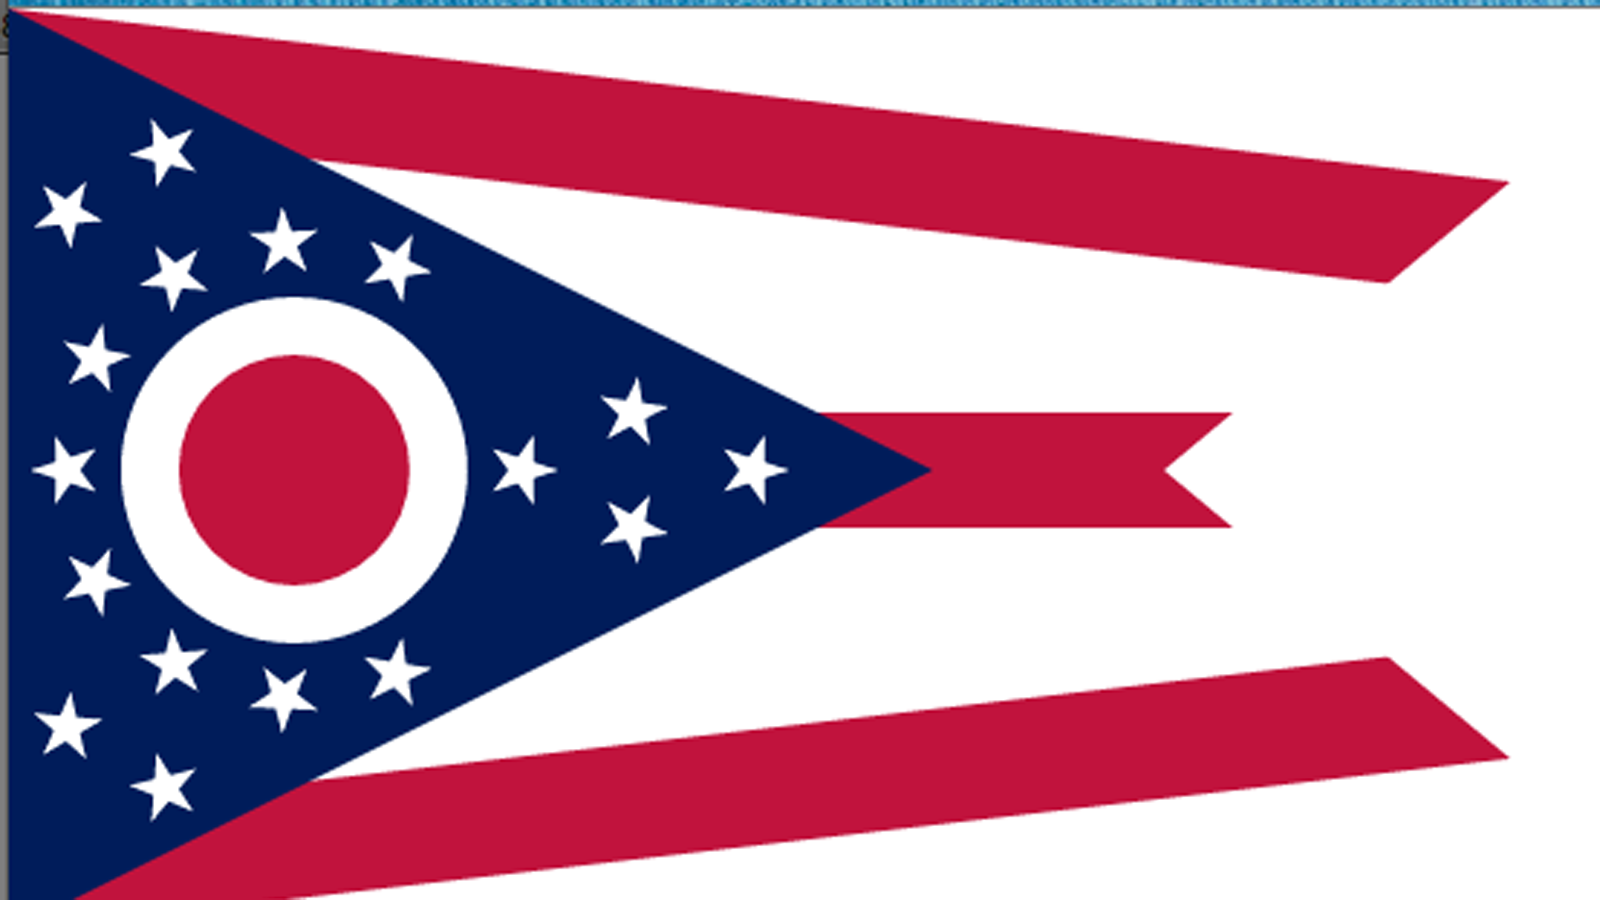 HRC Strongly Opposes Ohio's Voter Suppression Efforts